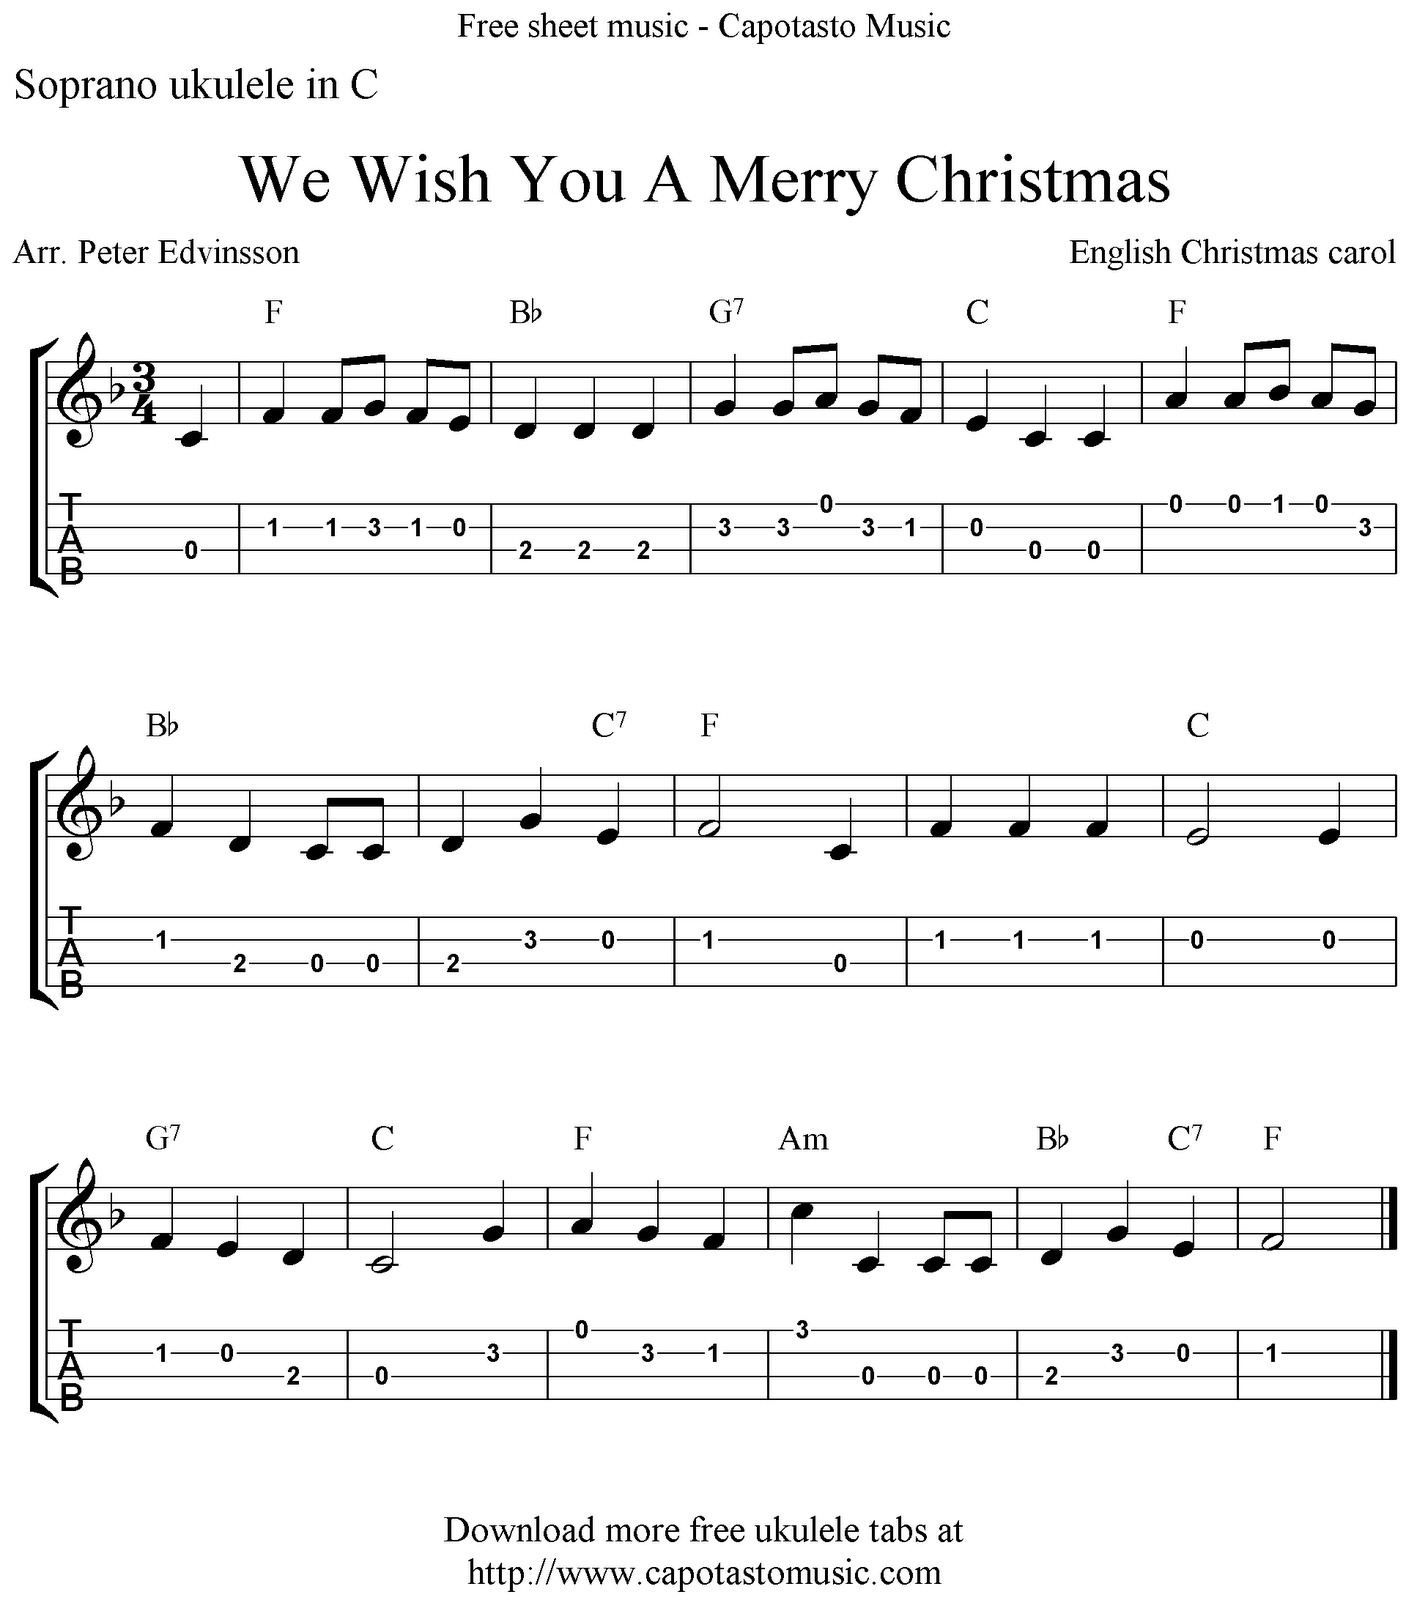 Free Sheet Music Scores: We Wish You A Merry Christmas, free Christmas ukulele tabs sheet music ...